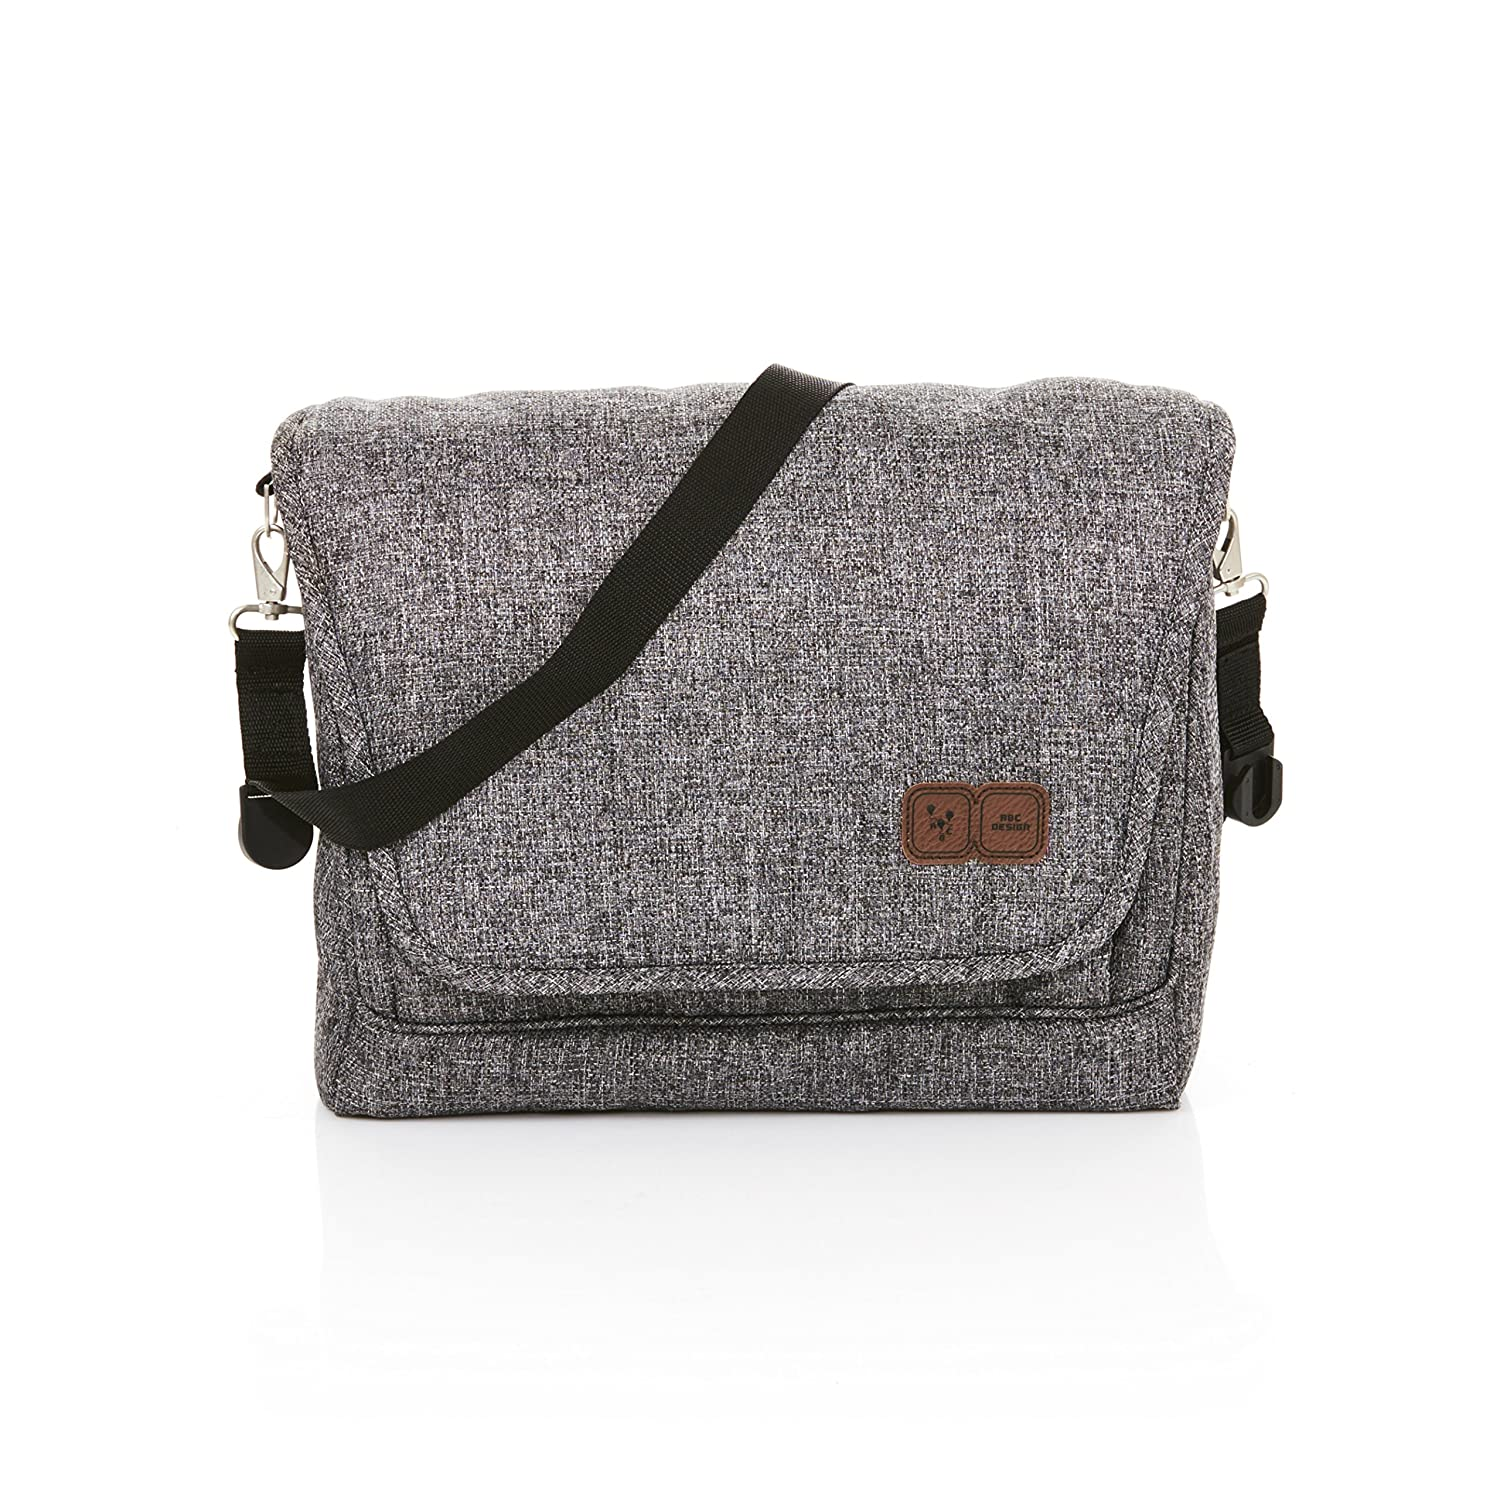 ABC Design Fashion Changing Bag, Mountain Kims Baby Equipment Co Ltd AB91373802